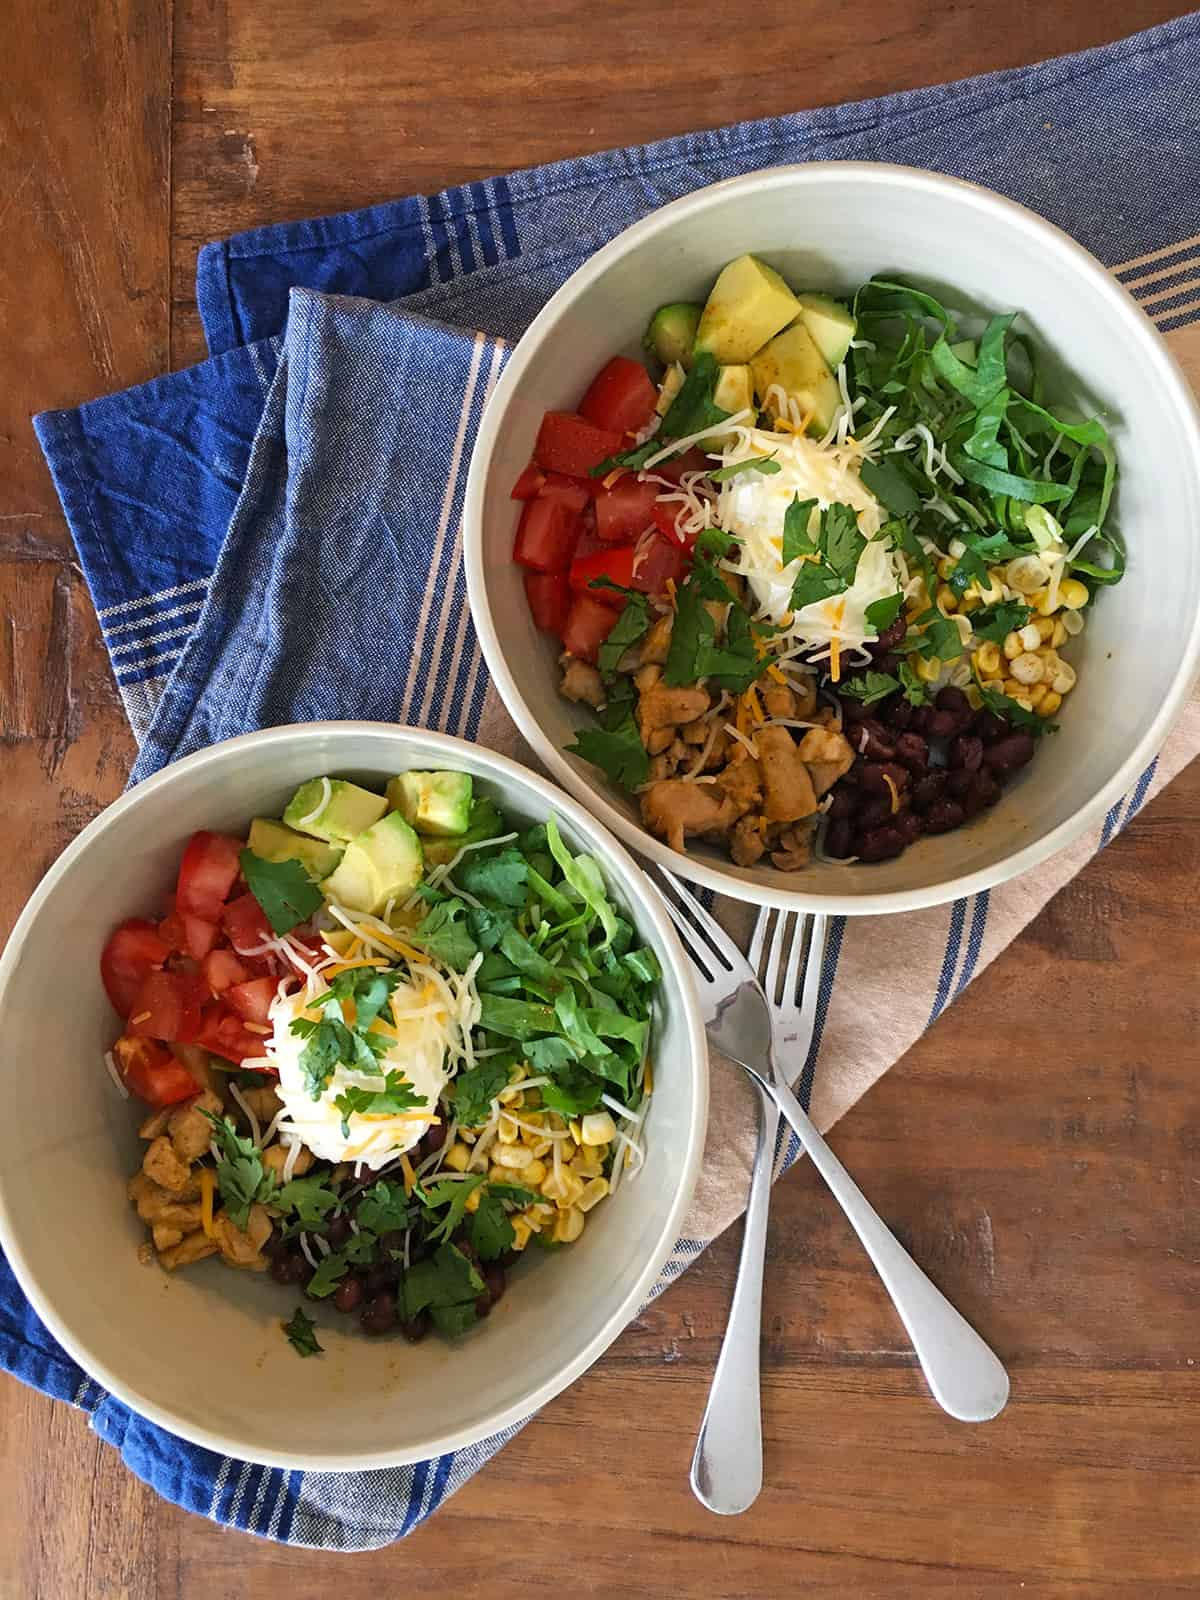 Two citrus chicken burrito bowls with a blue and tan striped napkin on a brown wood table